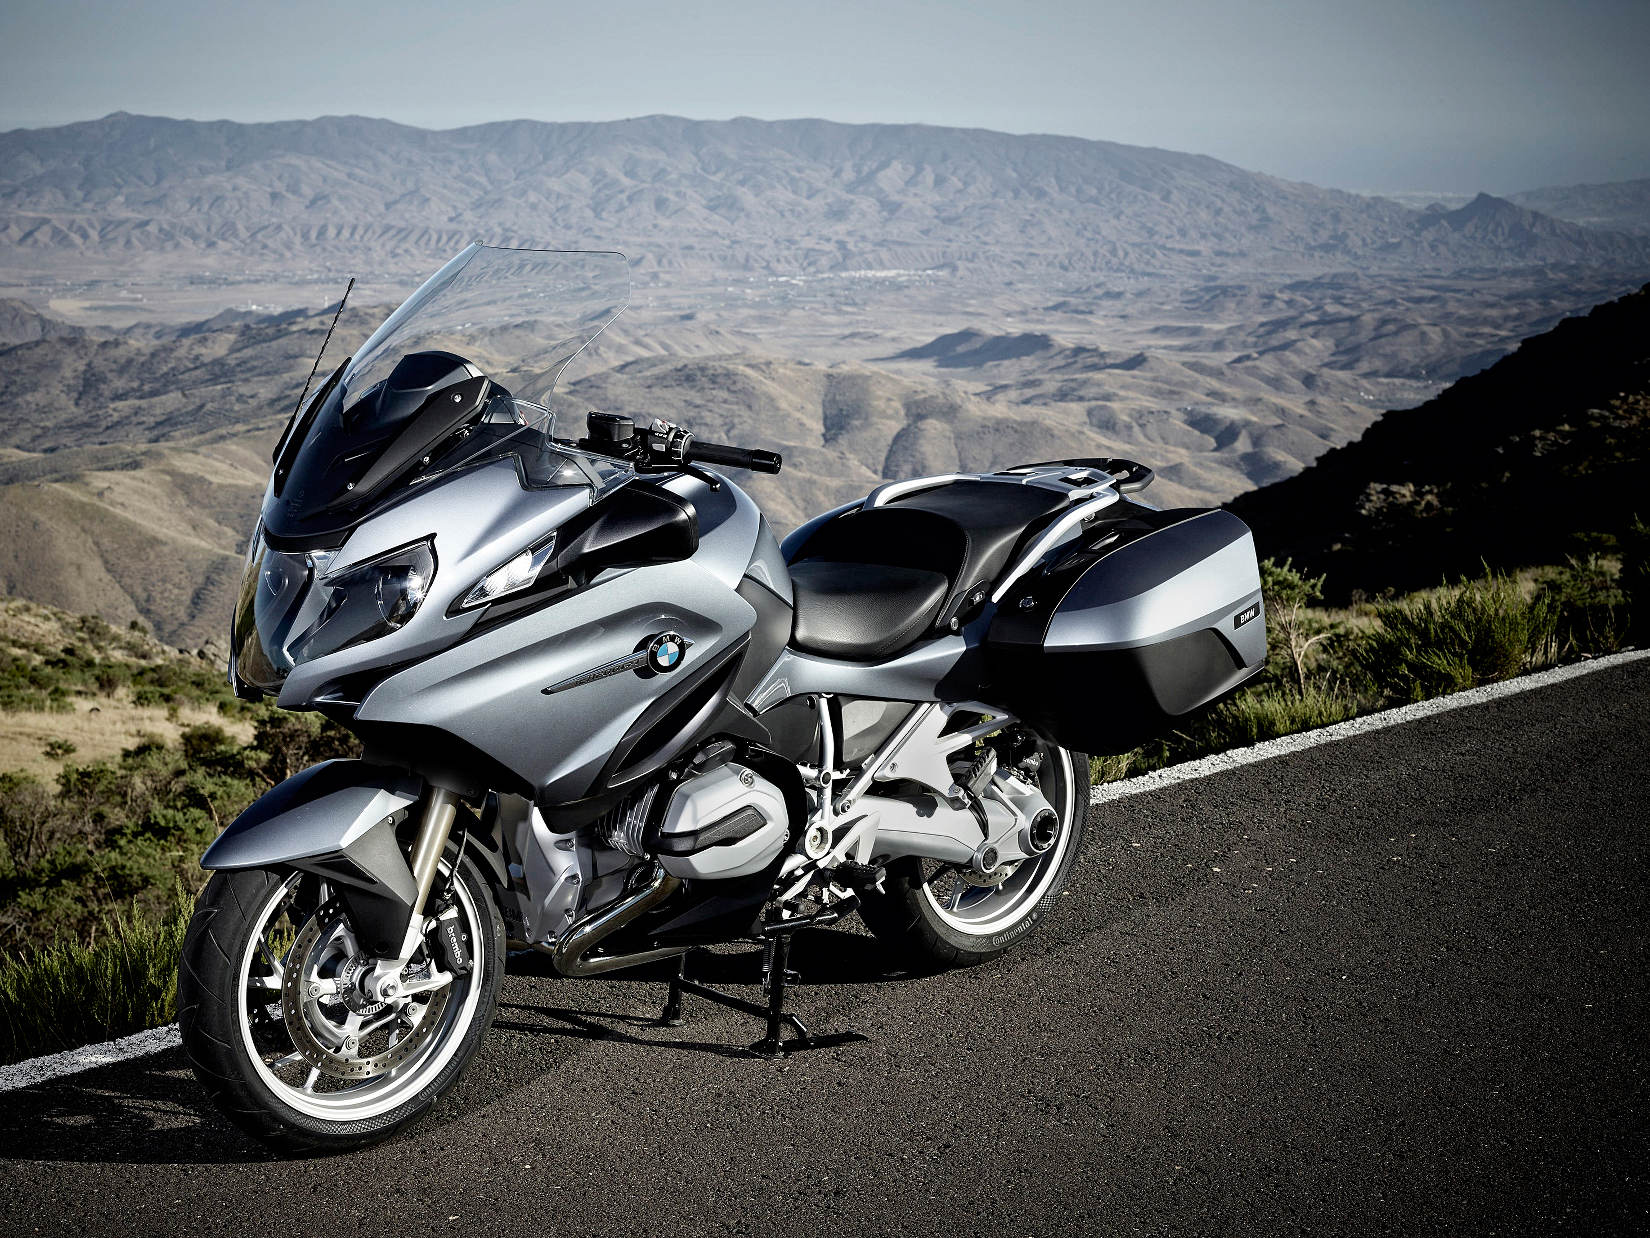 BMW_R1200RT_middle